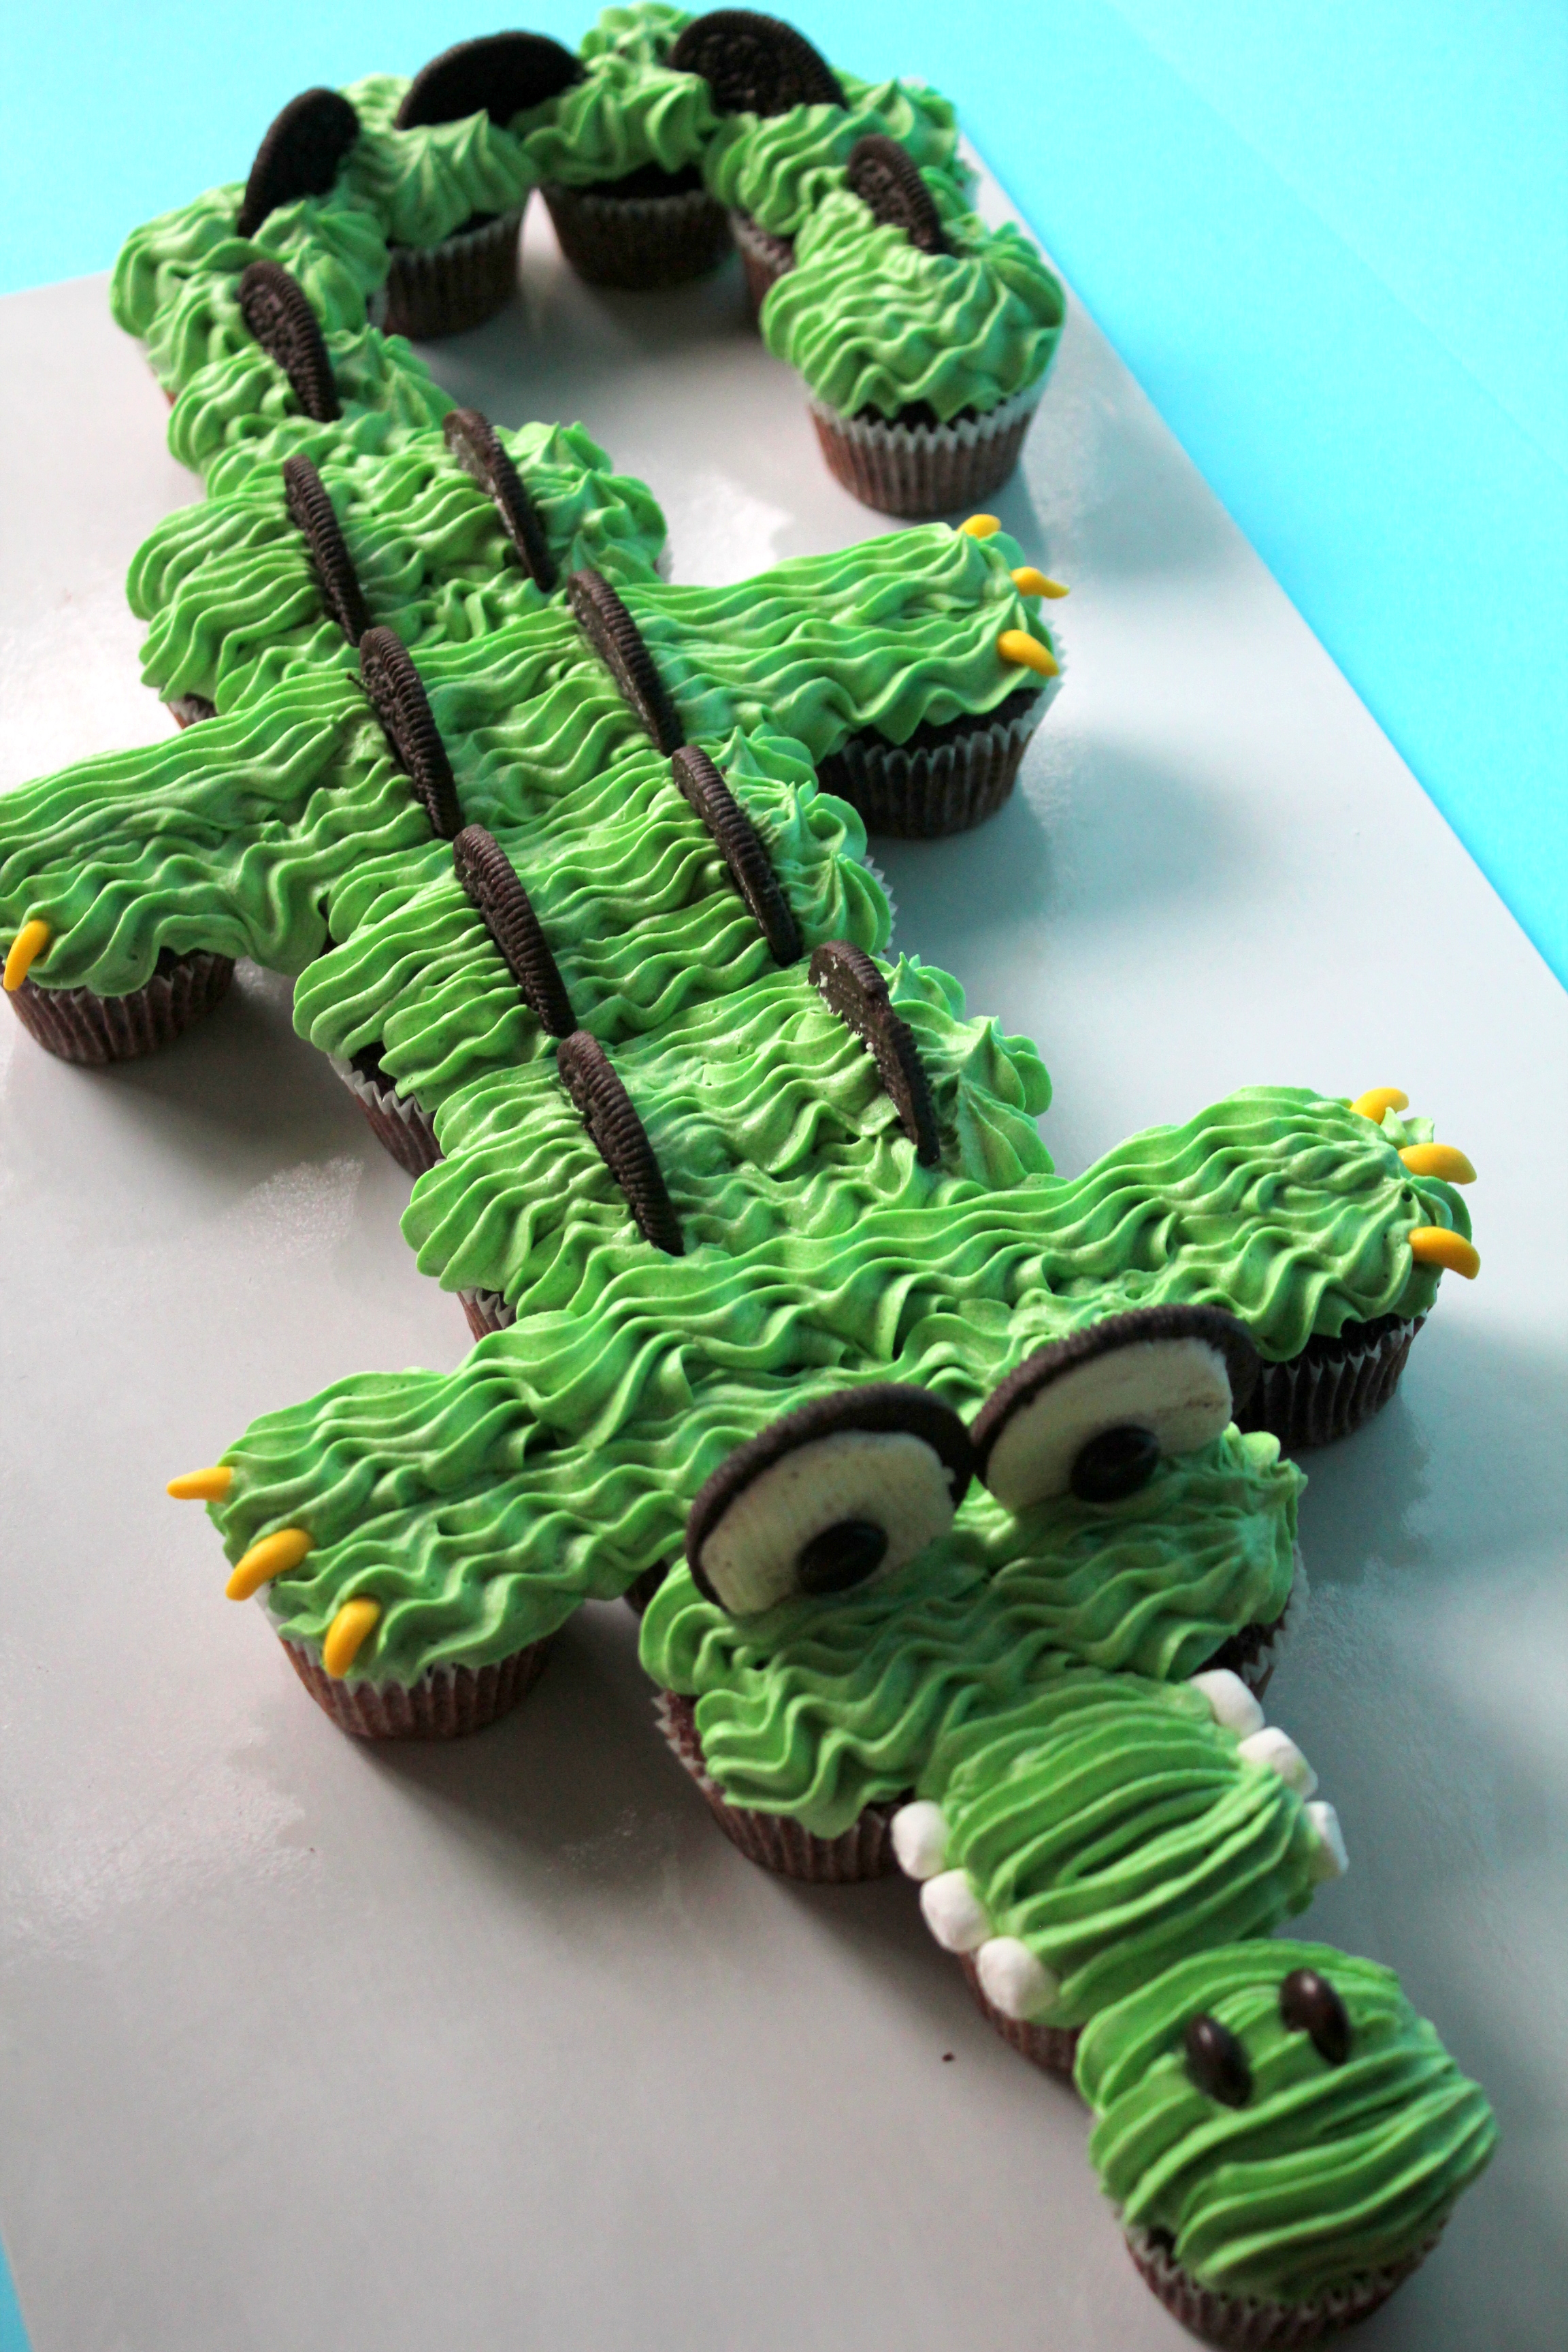 """6th BIRTHDAY PARTY  """"We ordered a crocodile shaped cupcake cake for my son's reptile themed sixth birthday party and it was fantastic!I'd just had my third baby two weeks earlier so the ease of ordering and delivery on the day made it stress free. The cupcakes and buttercream icing were delicious and everyone enjoyed them.""""  - Kate Sproule"""